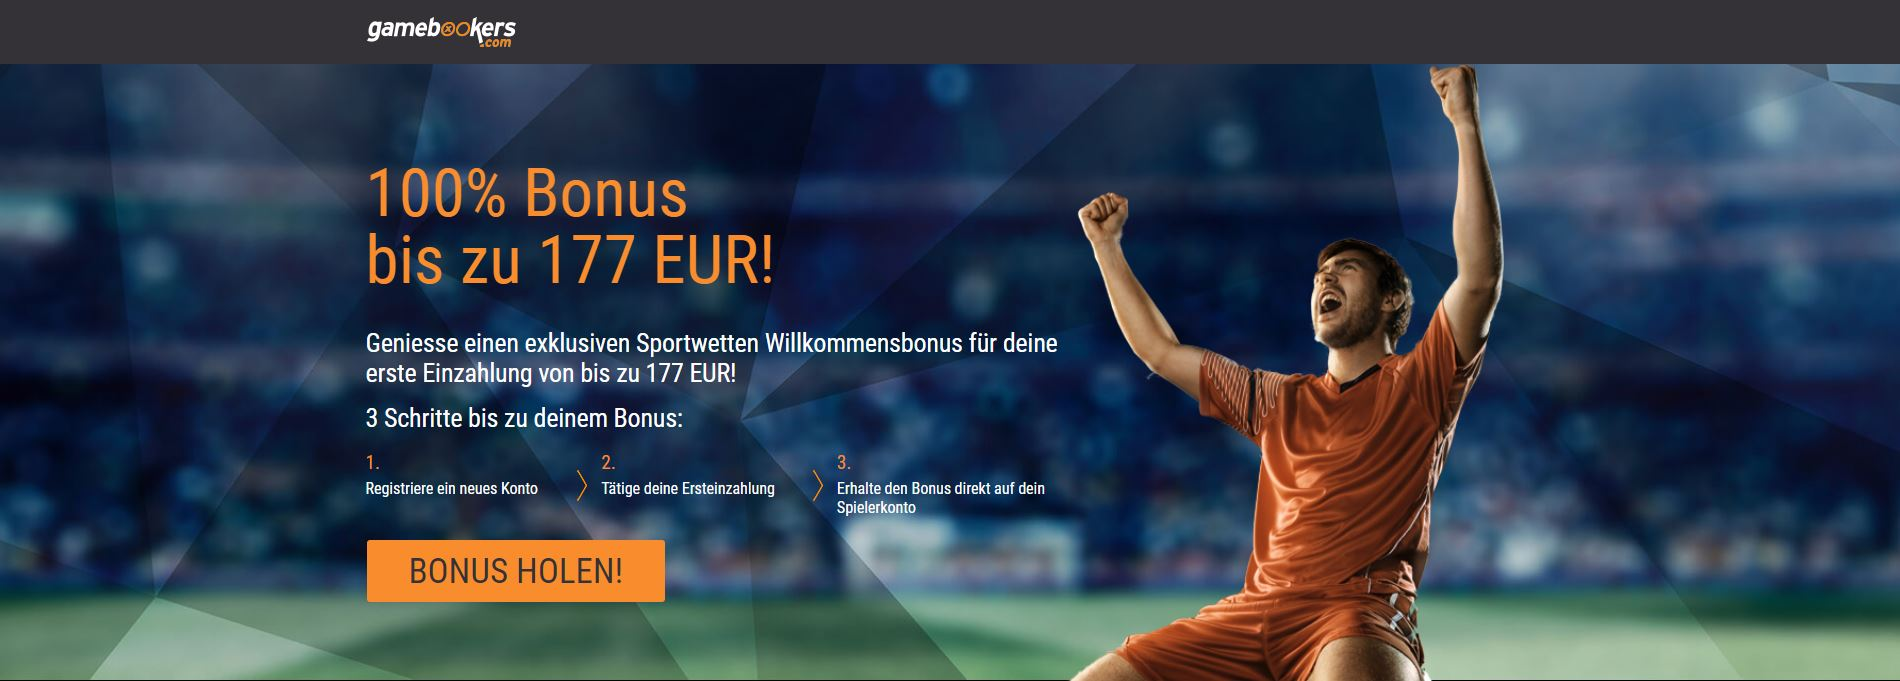 Gamebookers Sportwetten Bonus